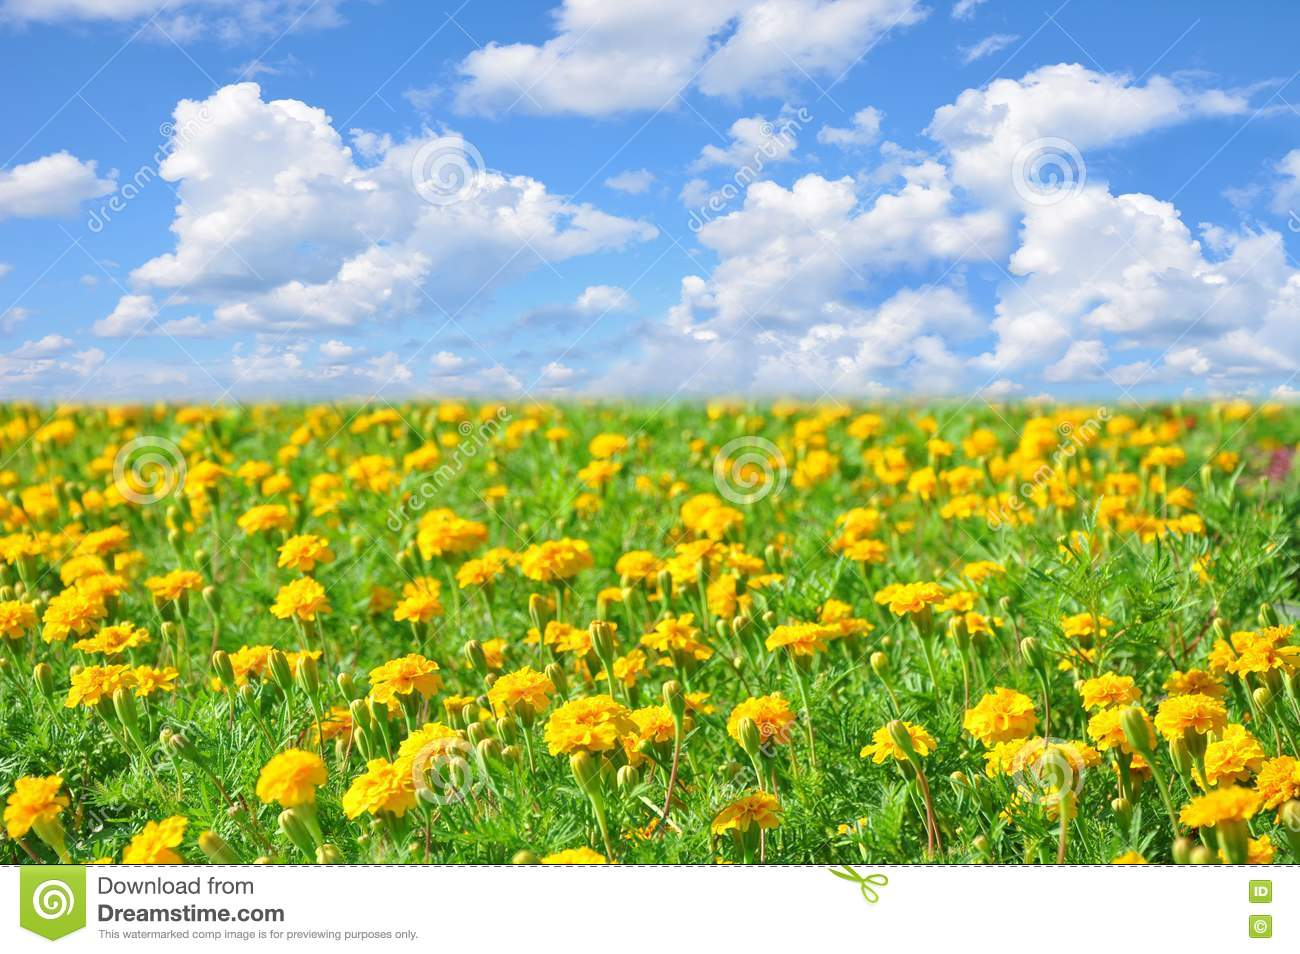 ... Beautiful Yellow Flowers In Sunny Stock Photography - Image: 15406602: dreamstime.com/stock-photography-field-beautiful-yellow-flowers...